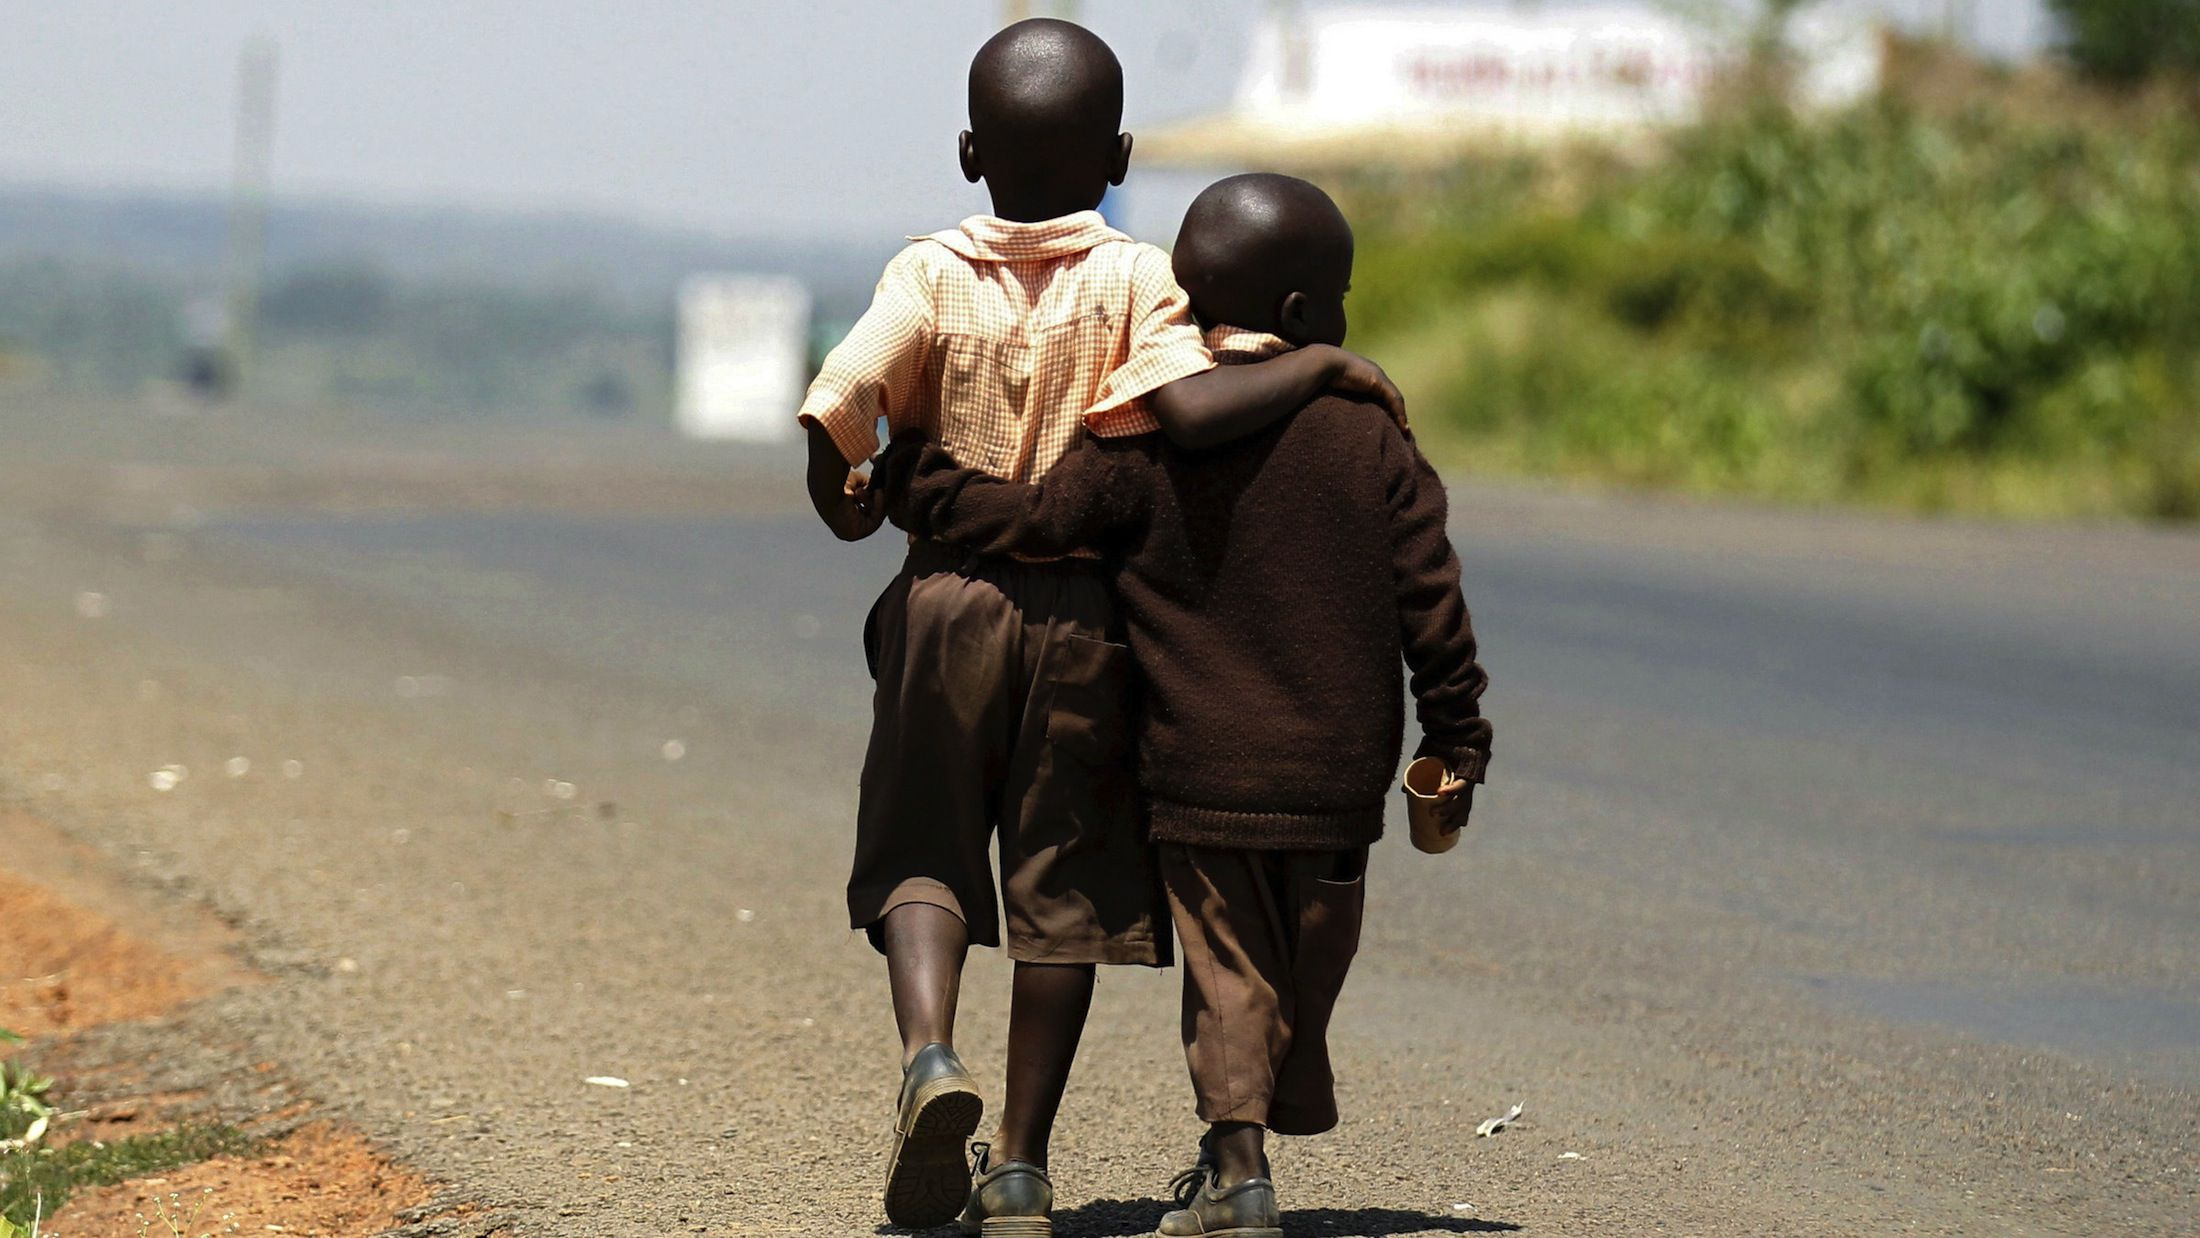 Boys in Kogelo, the hometown of Obama's father, walk home from school for lunch